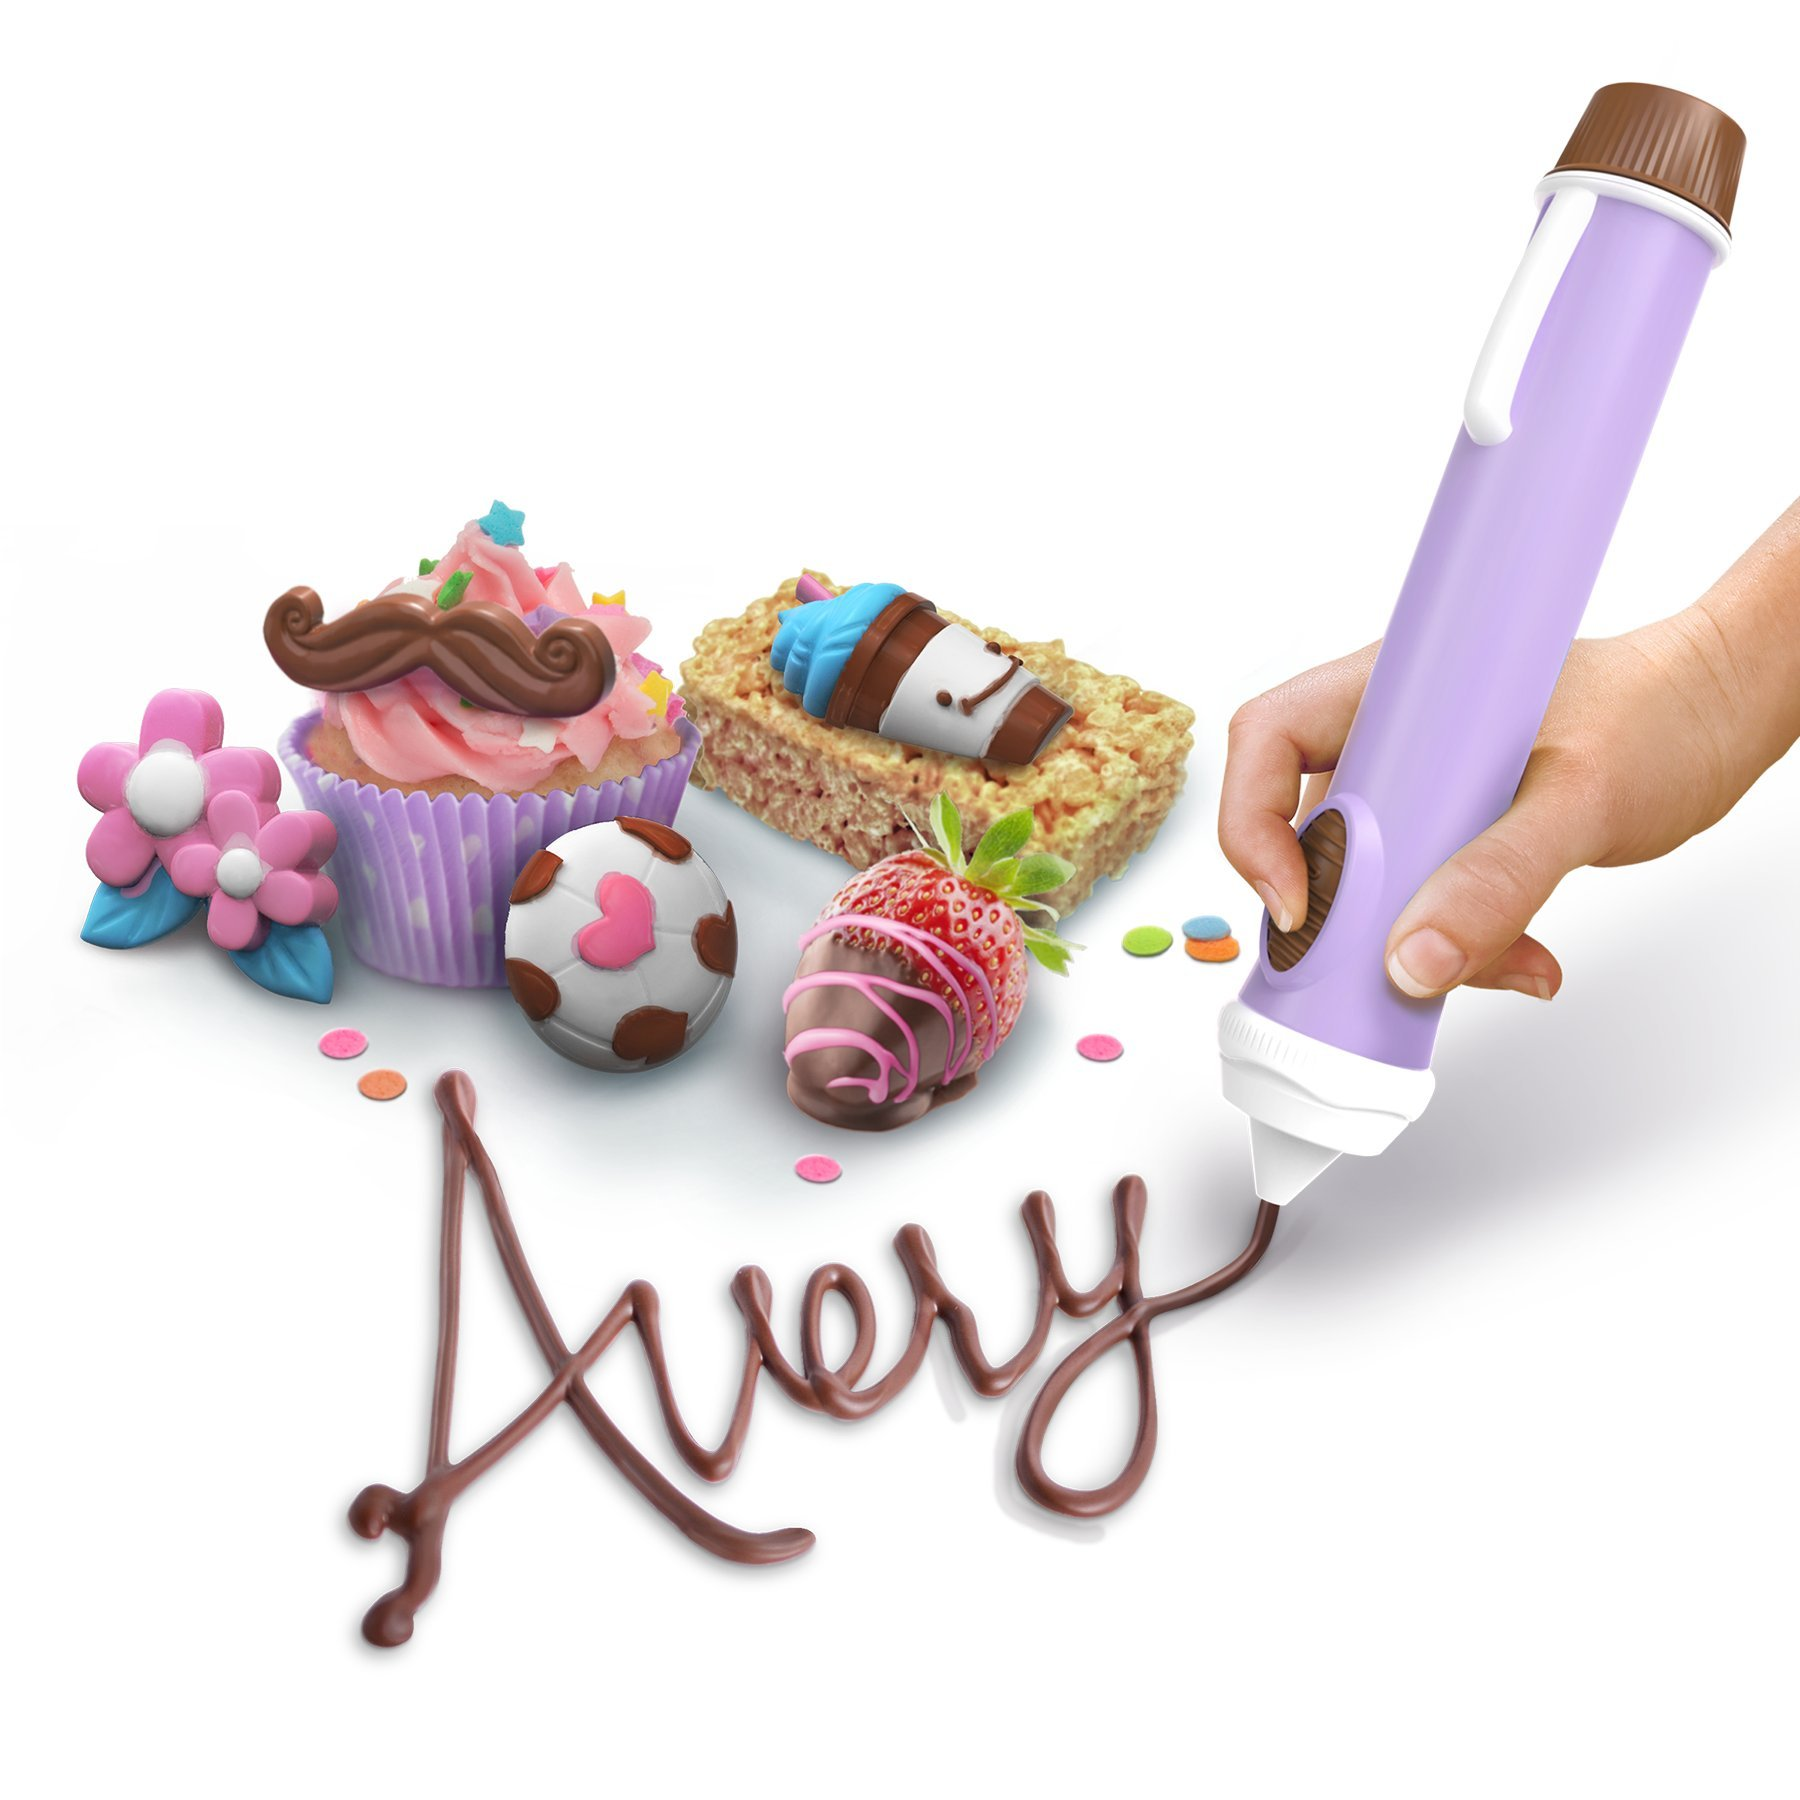 Real Cooking Chocolate Pen 2 Kit - Includes 4 Chocolate Refills by Real Cooking